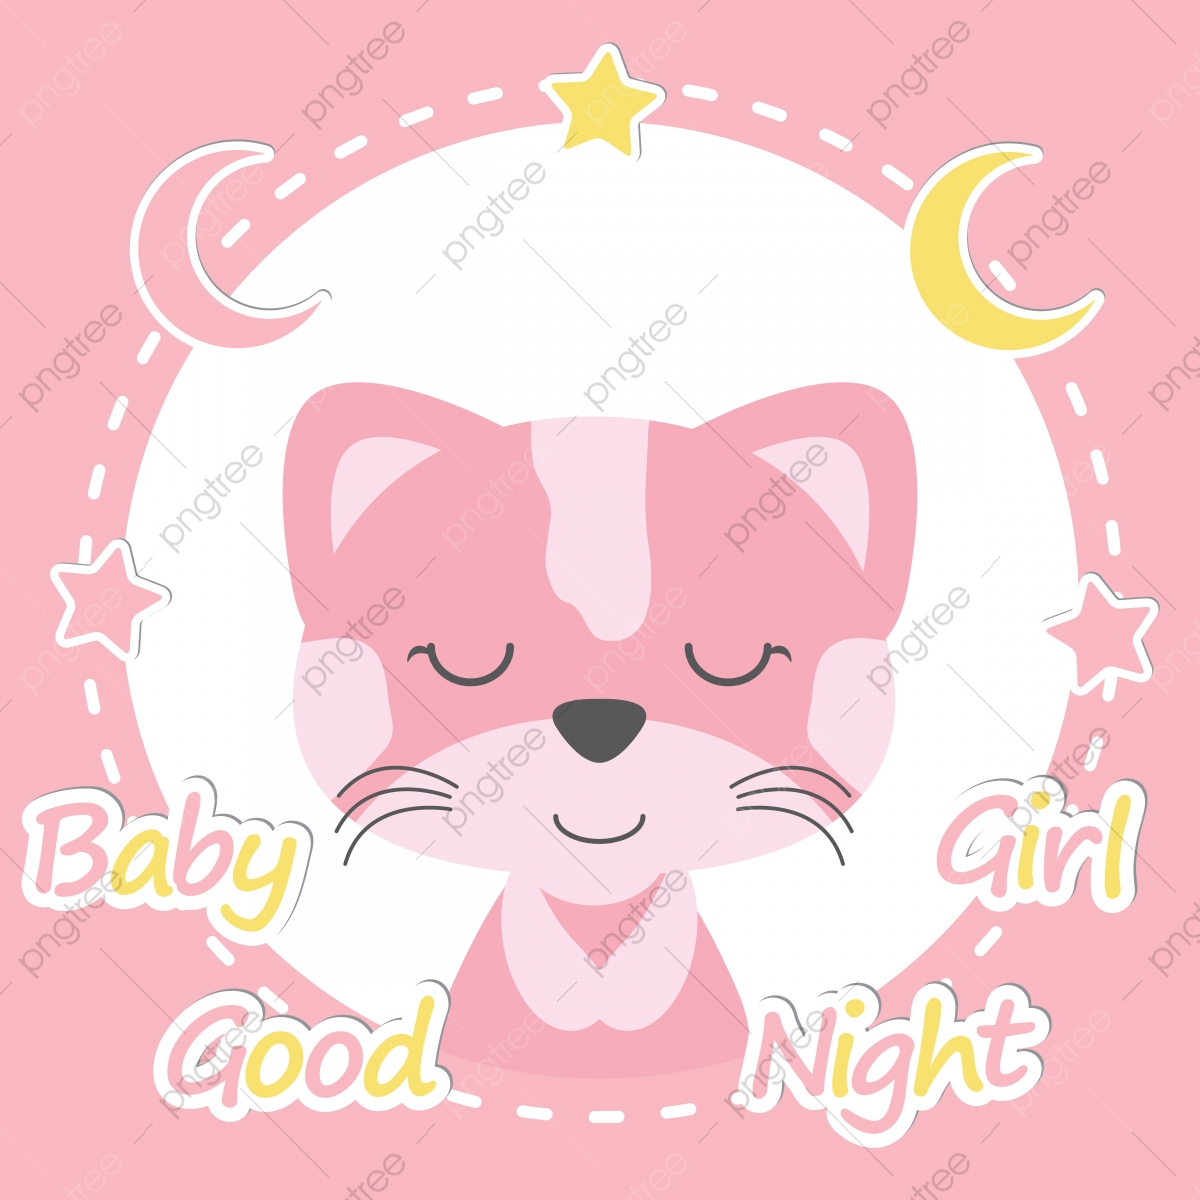 Cute Cat On Pink Frame Cartoon Illustration For Baby Shower Invitation Card Design Wallpaper And Postcard Adorable Card Cartoon Png And Vector With Transparent Background For Free Download